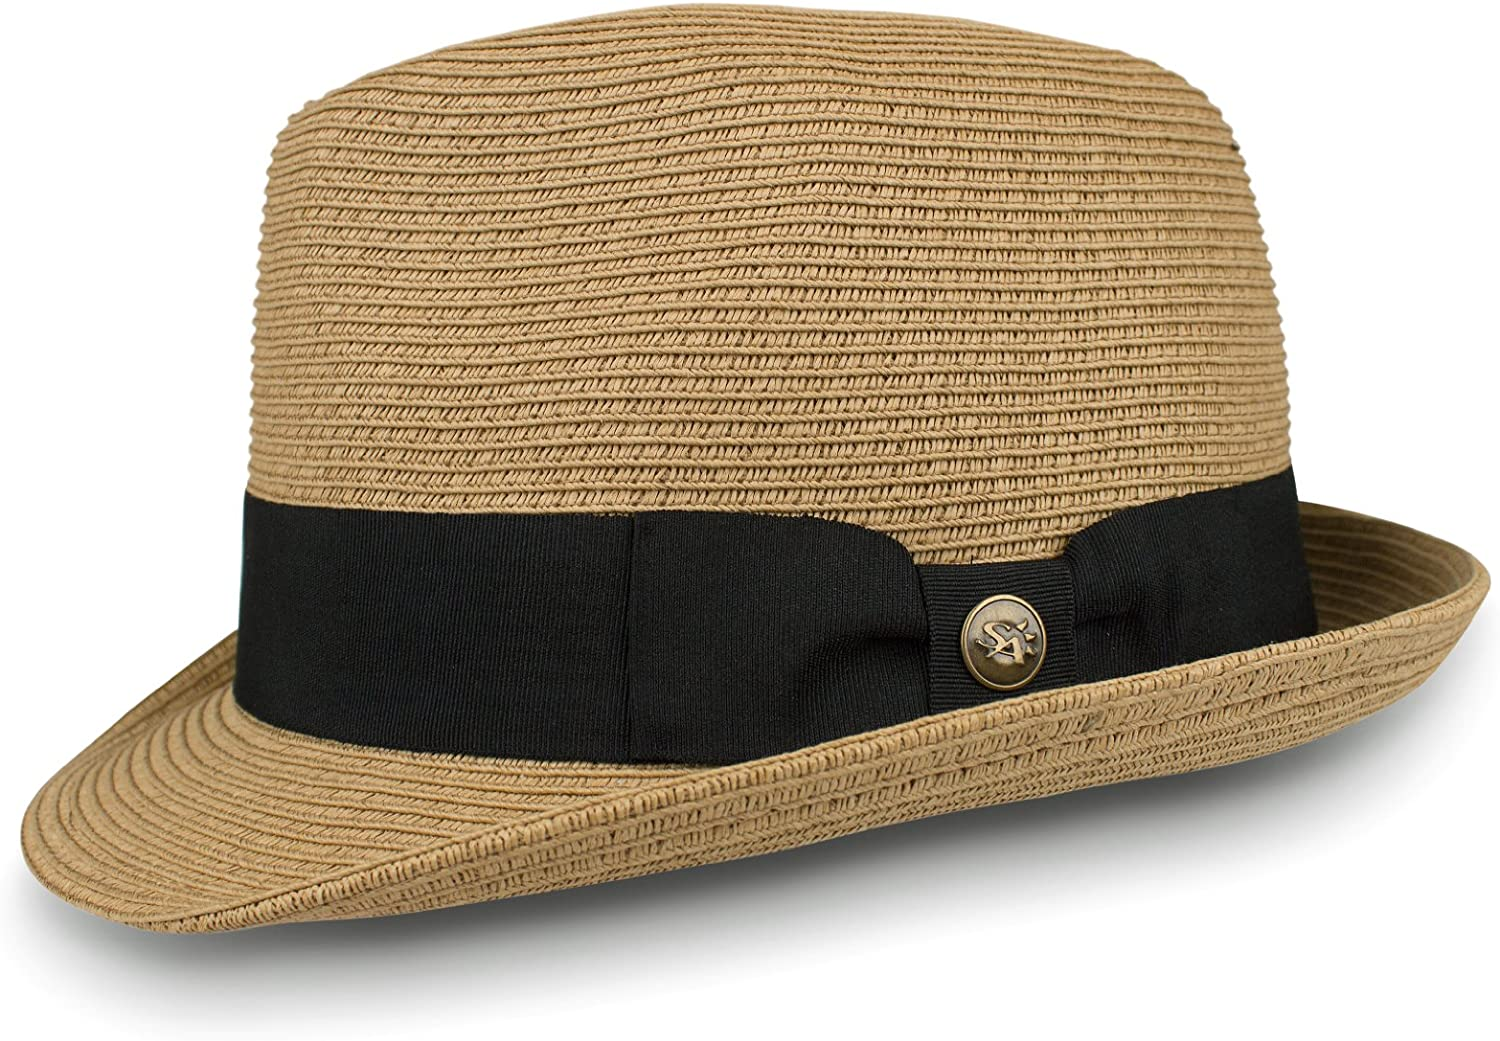 Sunday Afternoons Cayman Hat Bombing free shipping Discount is also underway